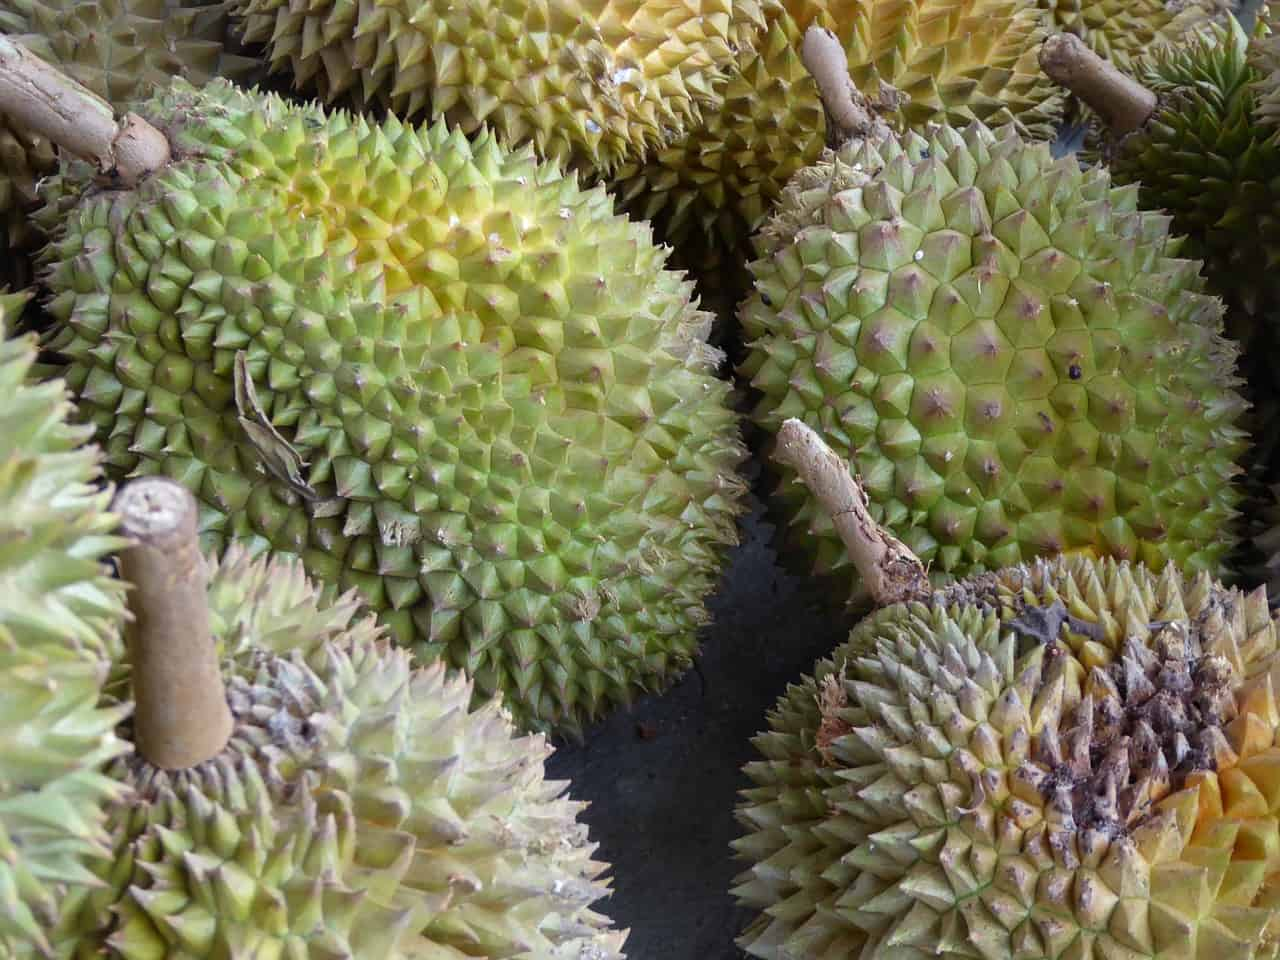 Top 15 Exotic Fruits You Can Find at Your Local Store